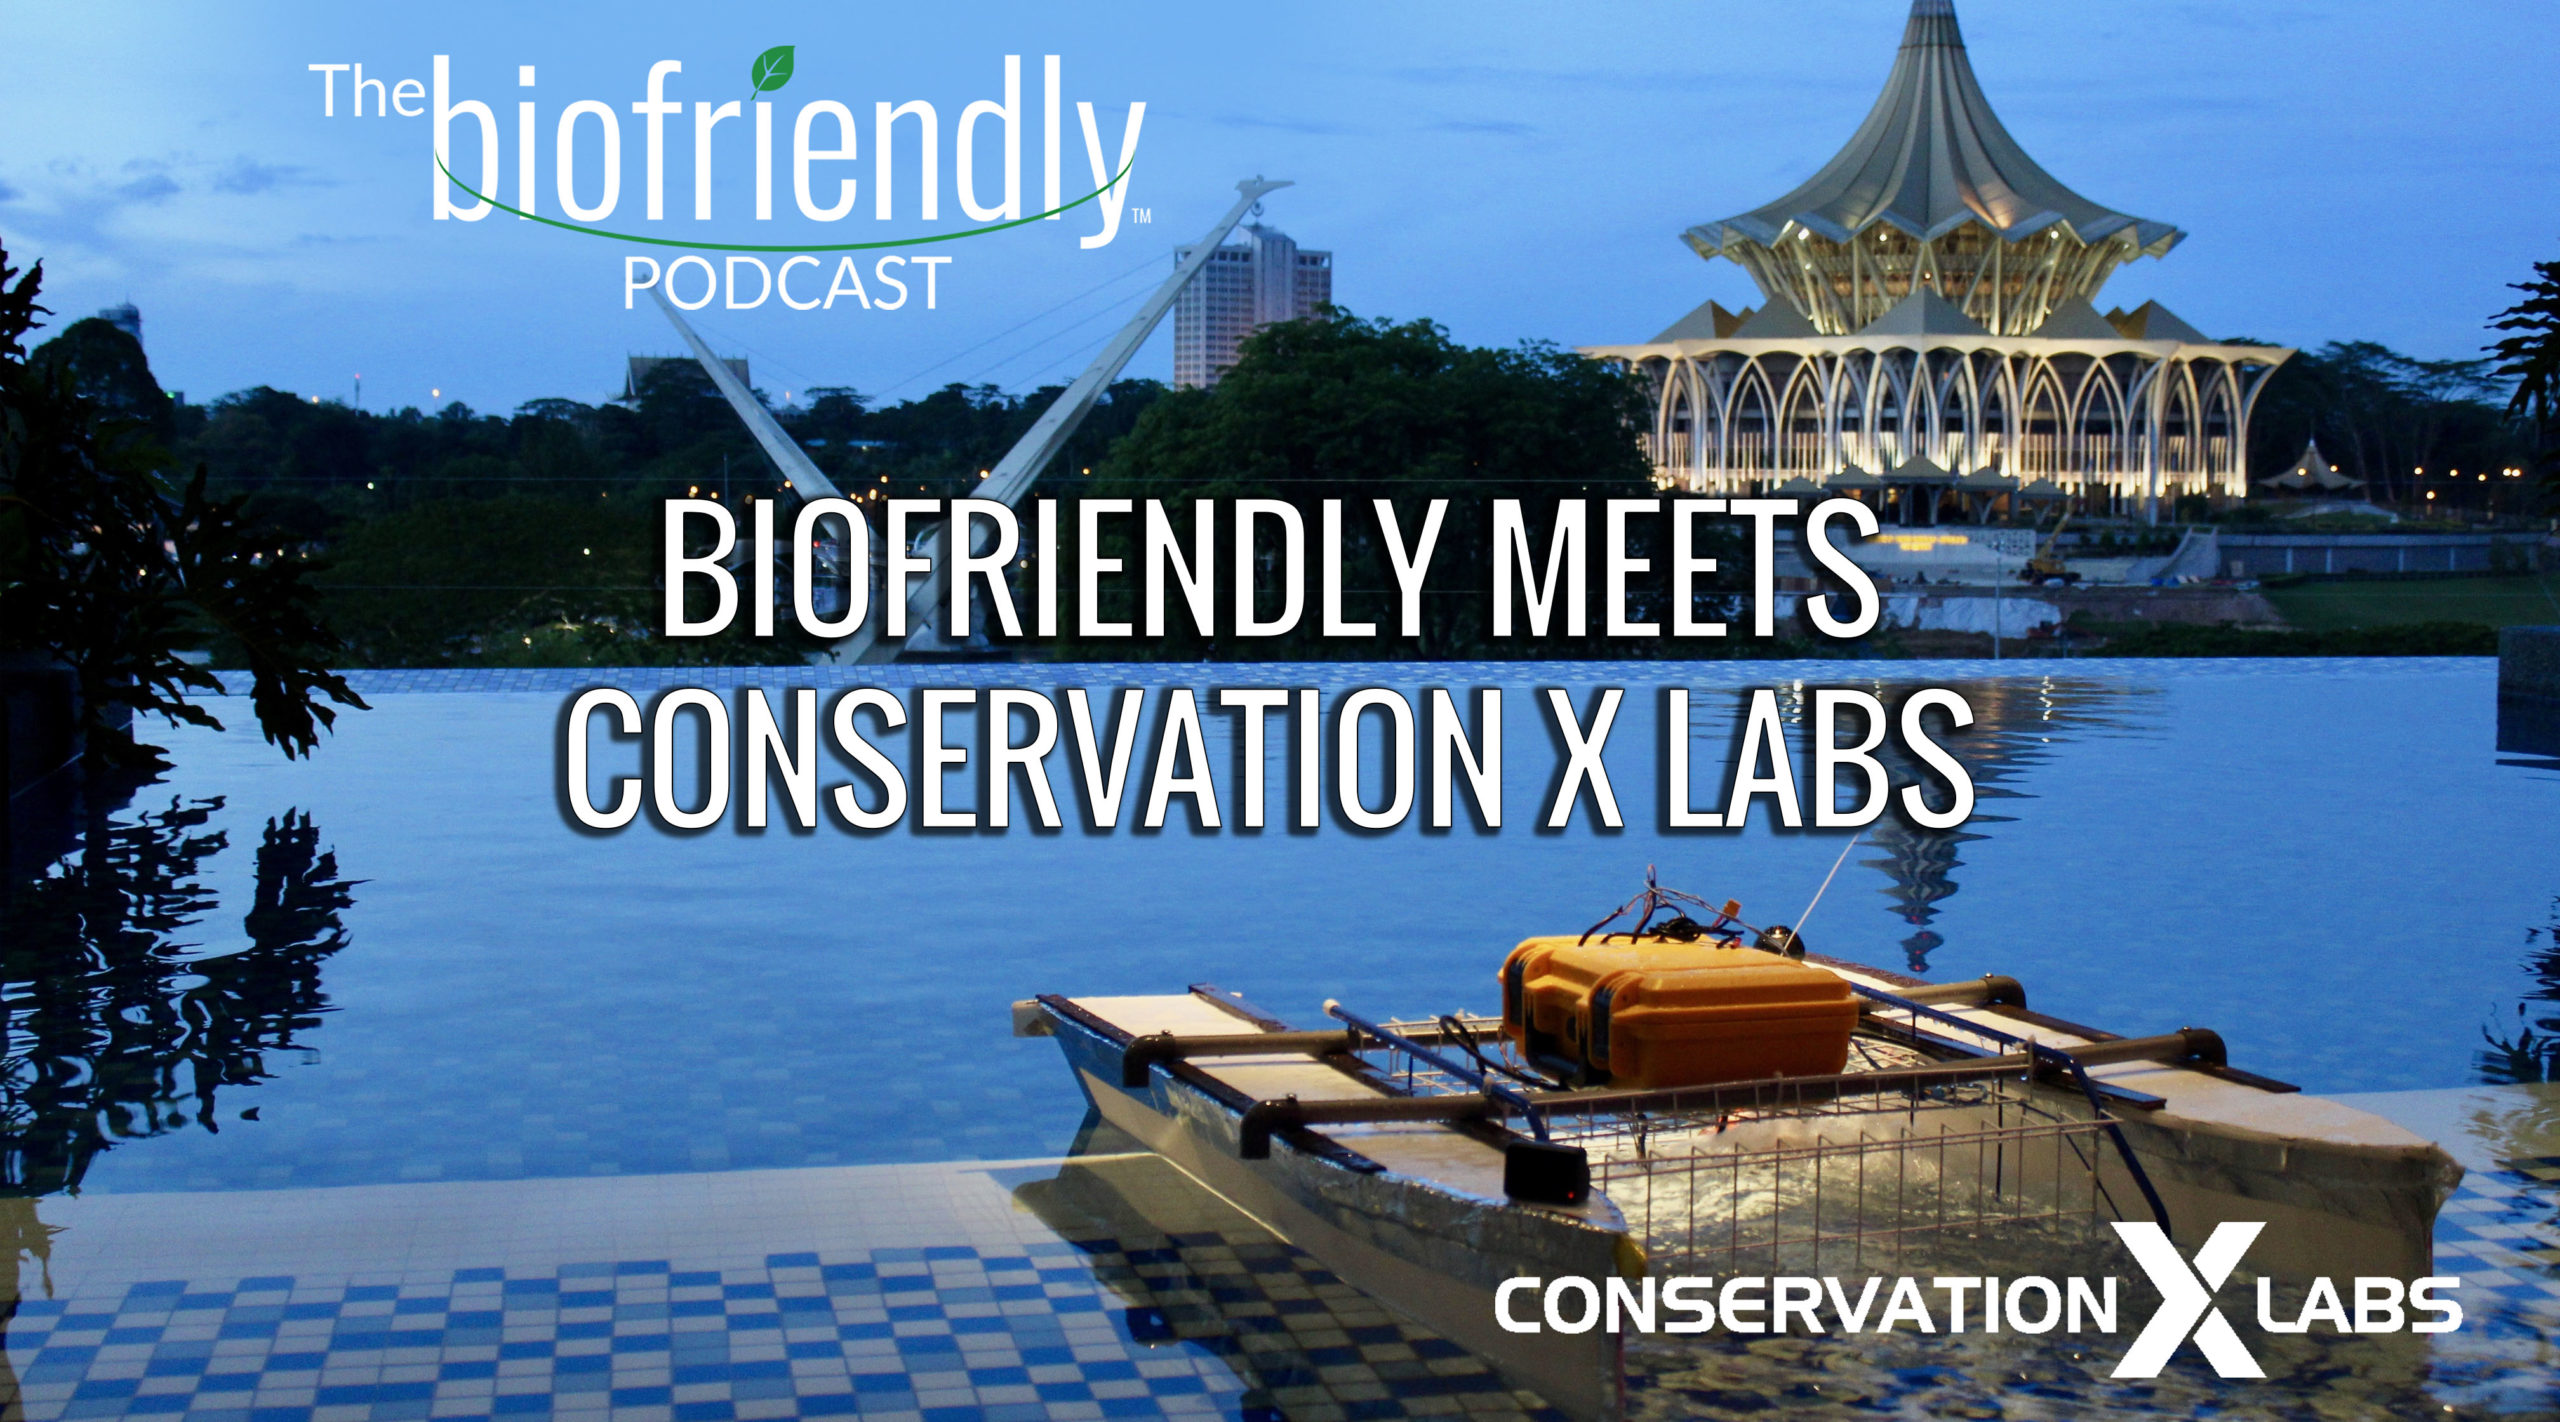 The Biofriendly Podcast - Episode 62 - Biofriendly Meets Conservation X Labs